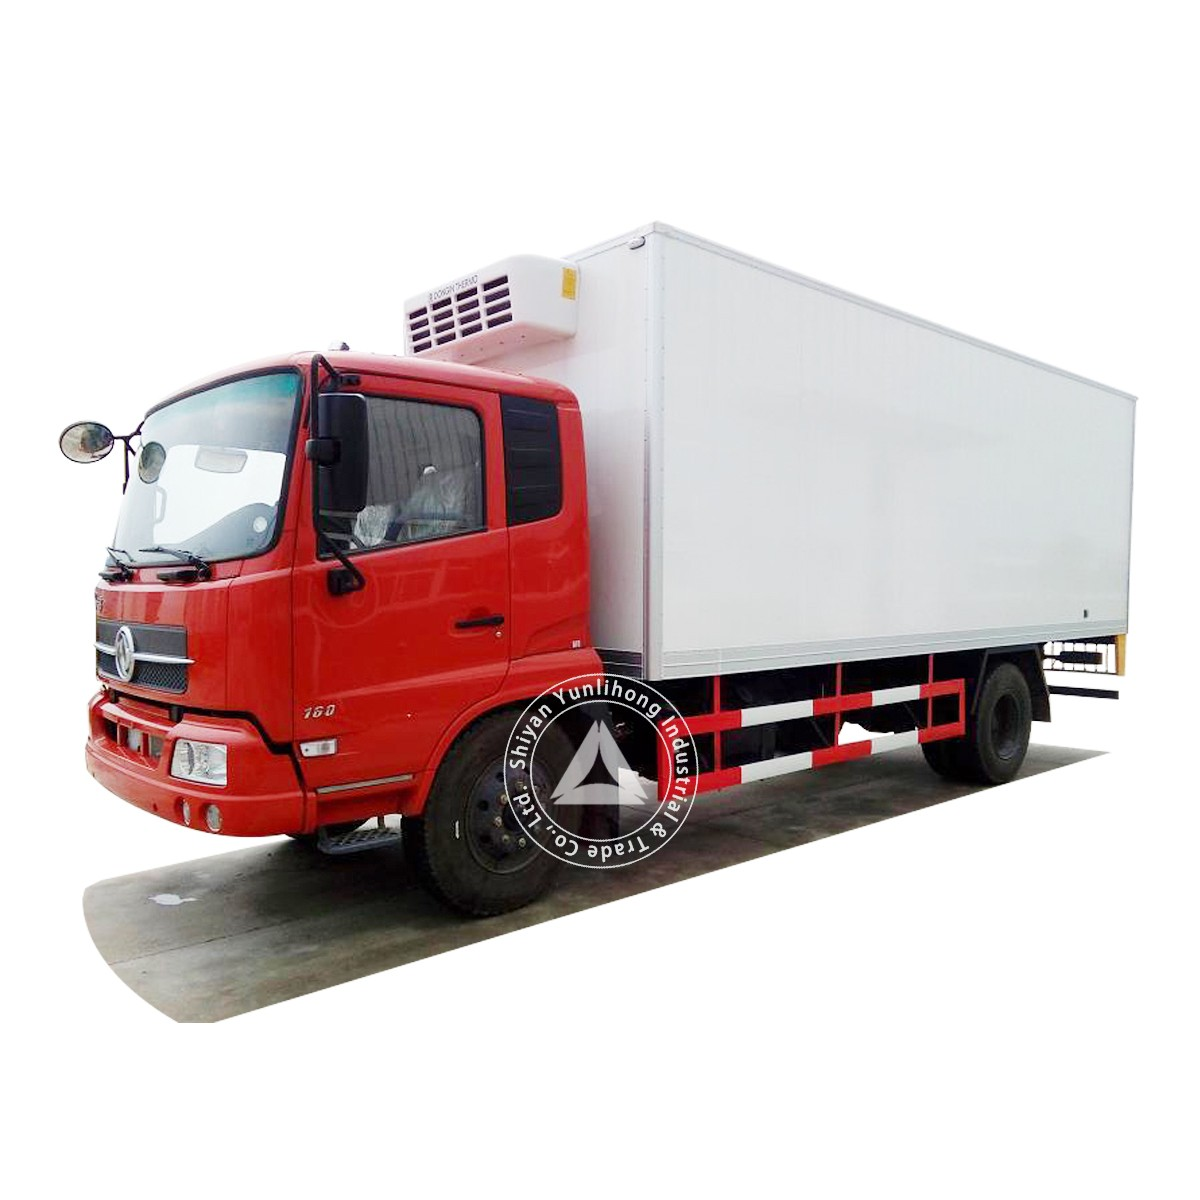 Dongfeng KR 4x2 GVW 11.6 Ton City Distribution Box TrucK Chassis